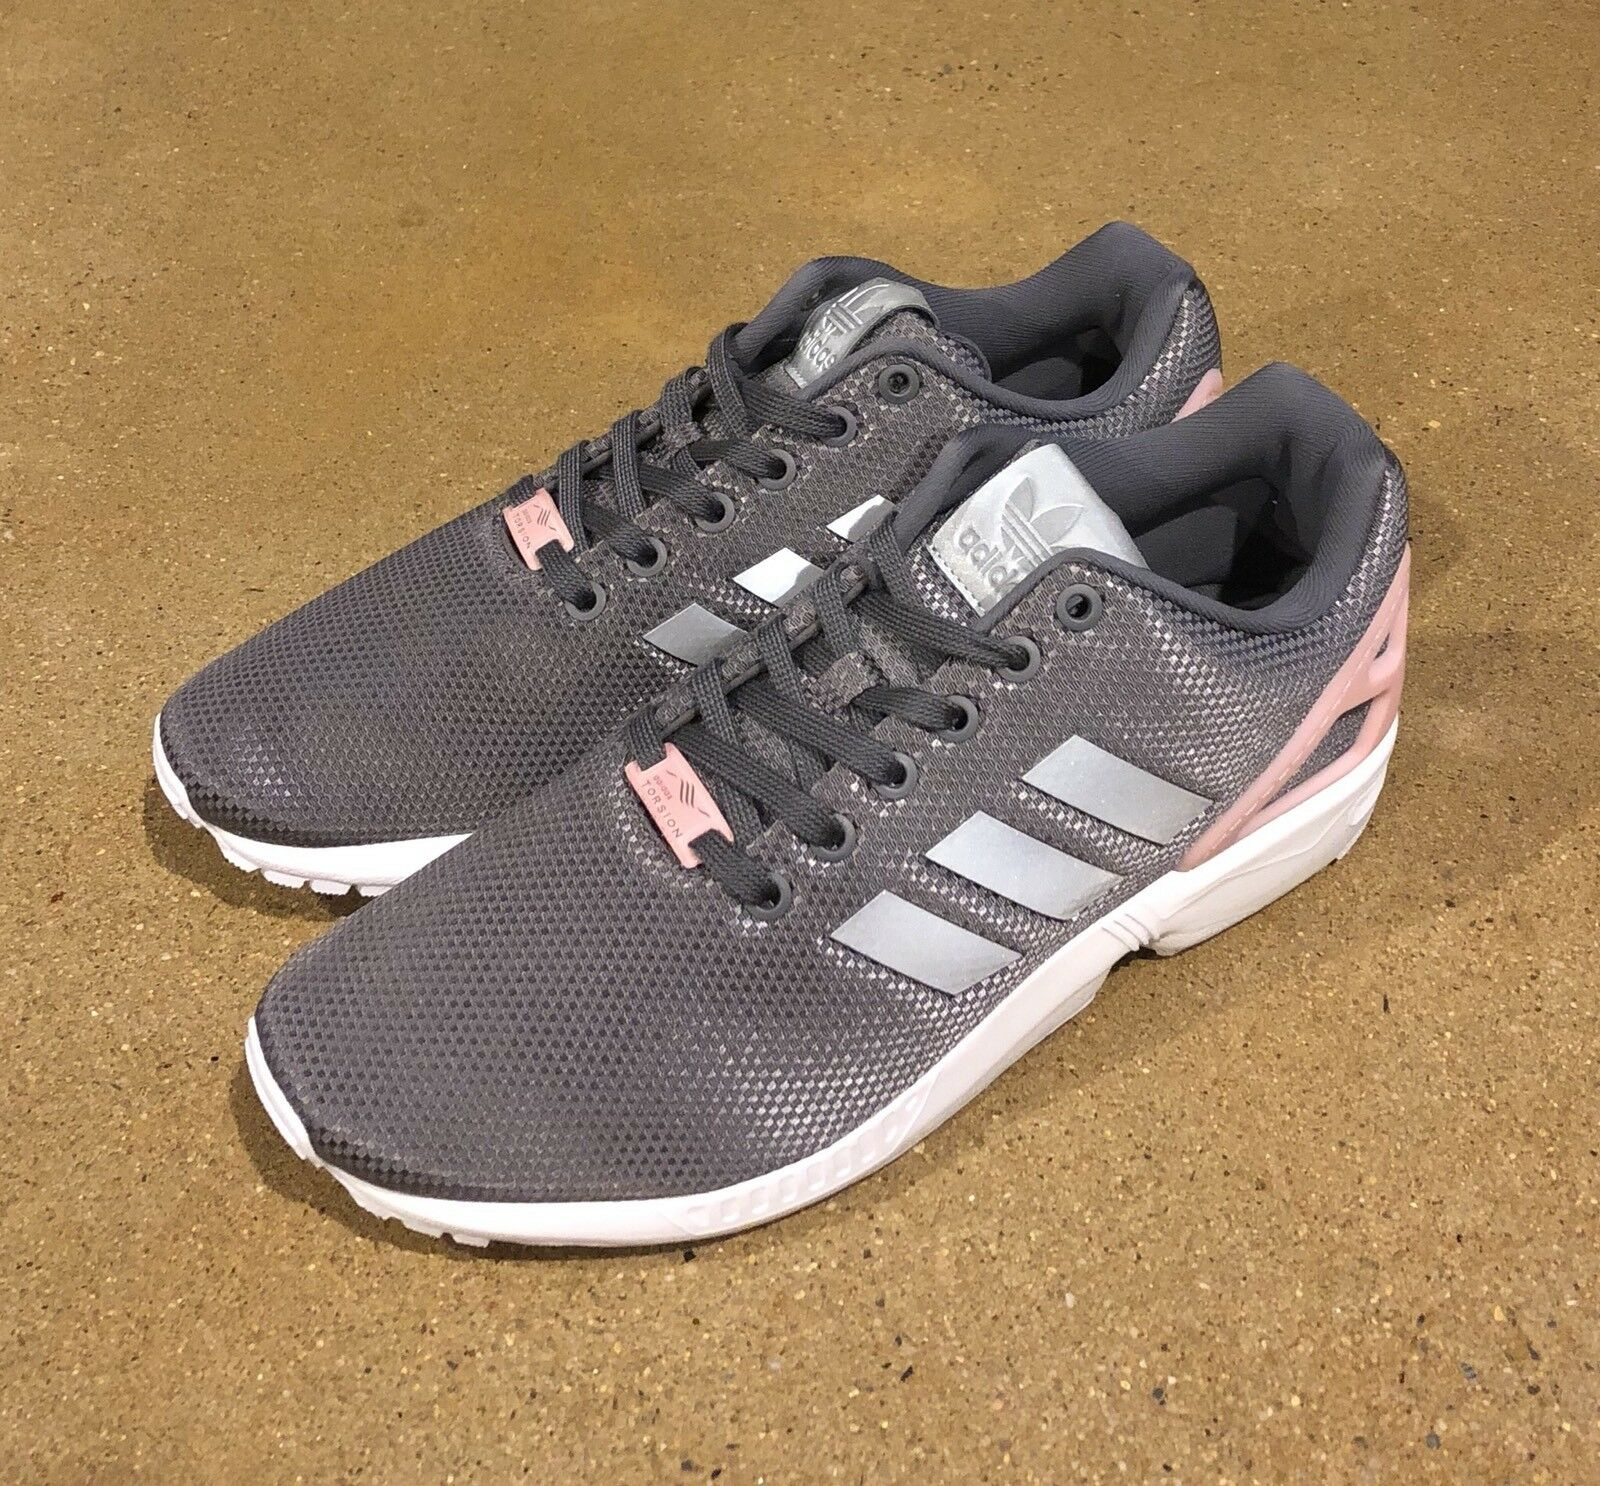 b4a09dffa3f81 ... Adidas Zx Flux Women s Size 9.5 US US US Grey Pink Running Cross  Trainer Shoes 99cc54 ...